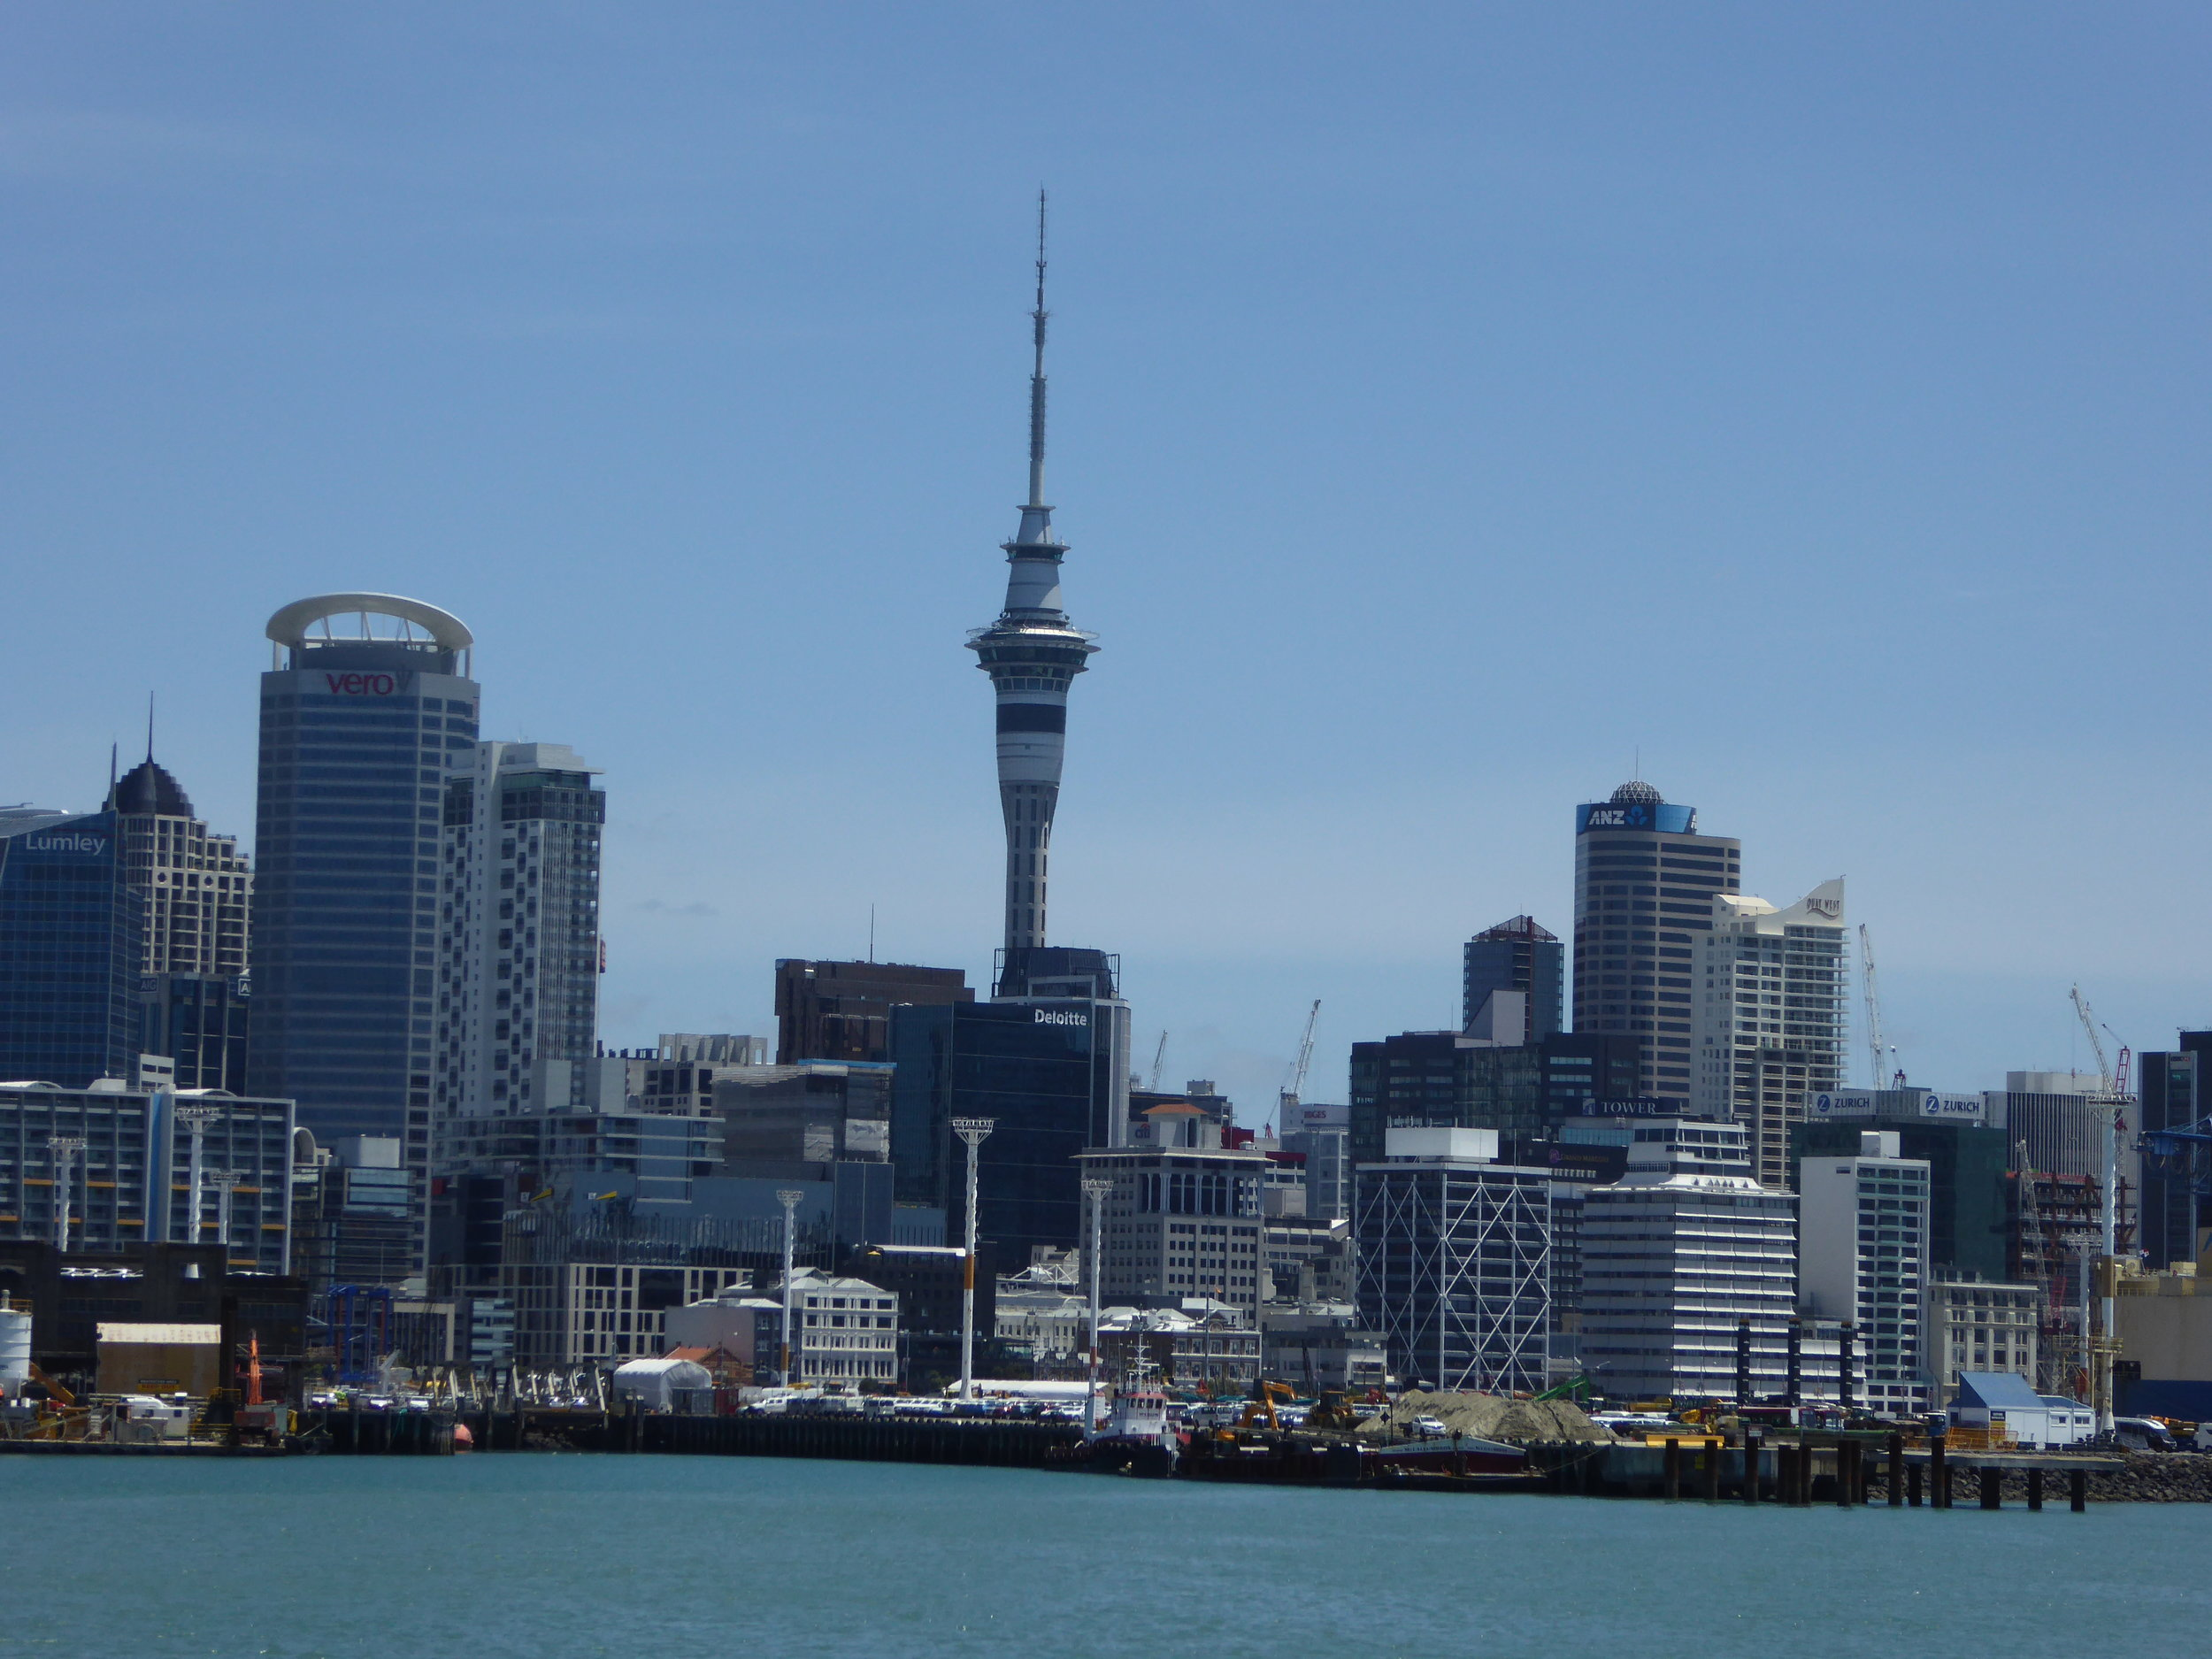 Auckland City, our view while on the boat.